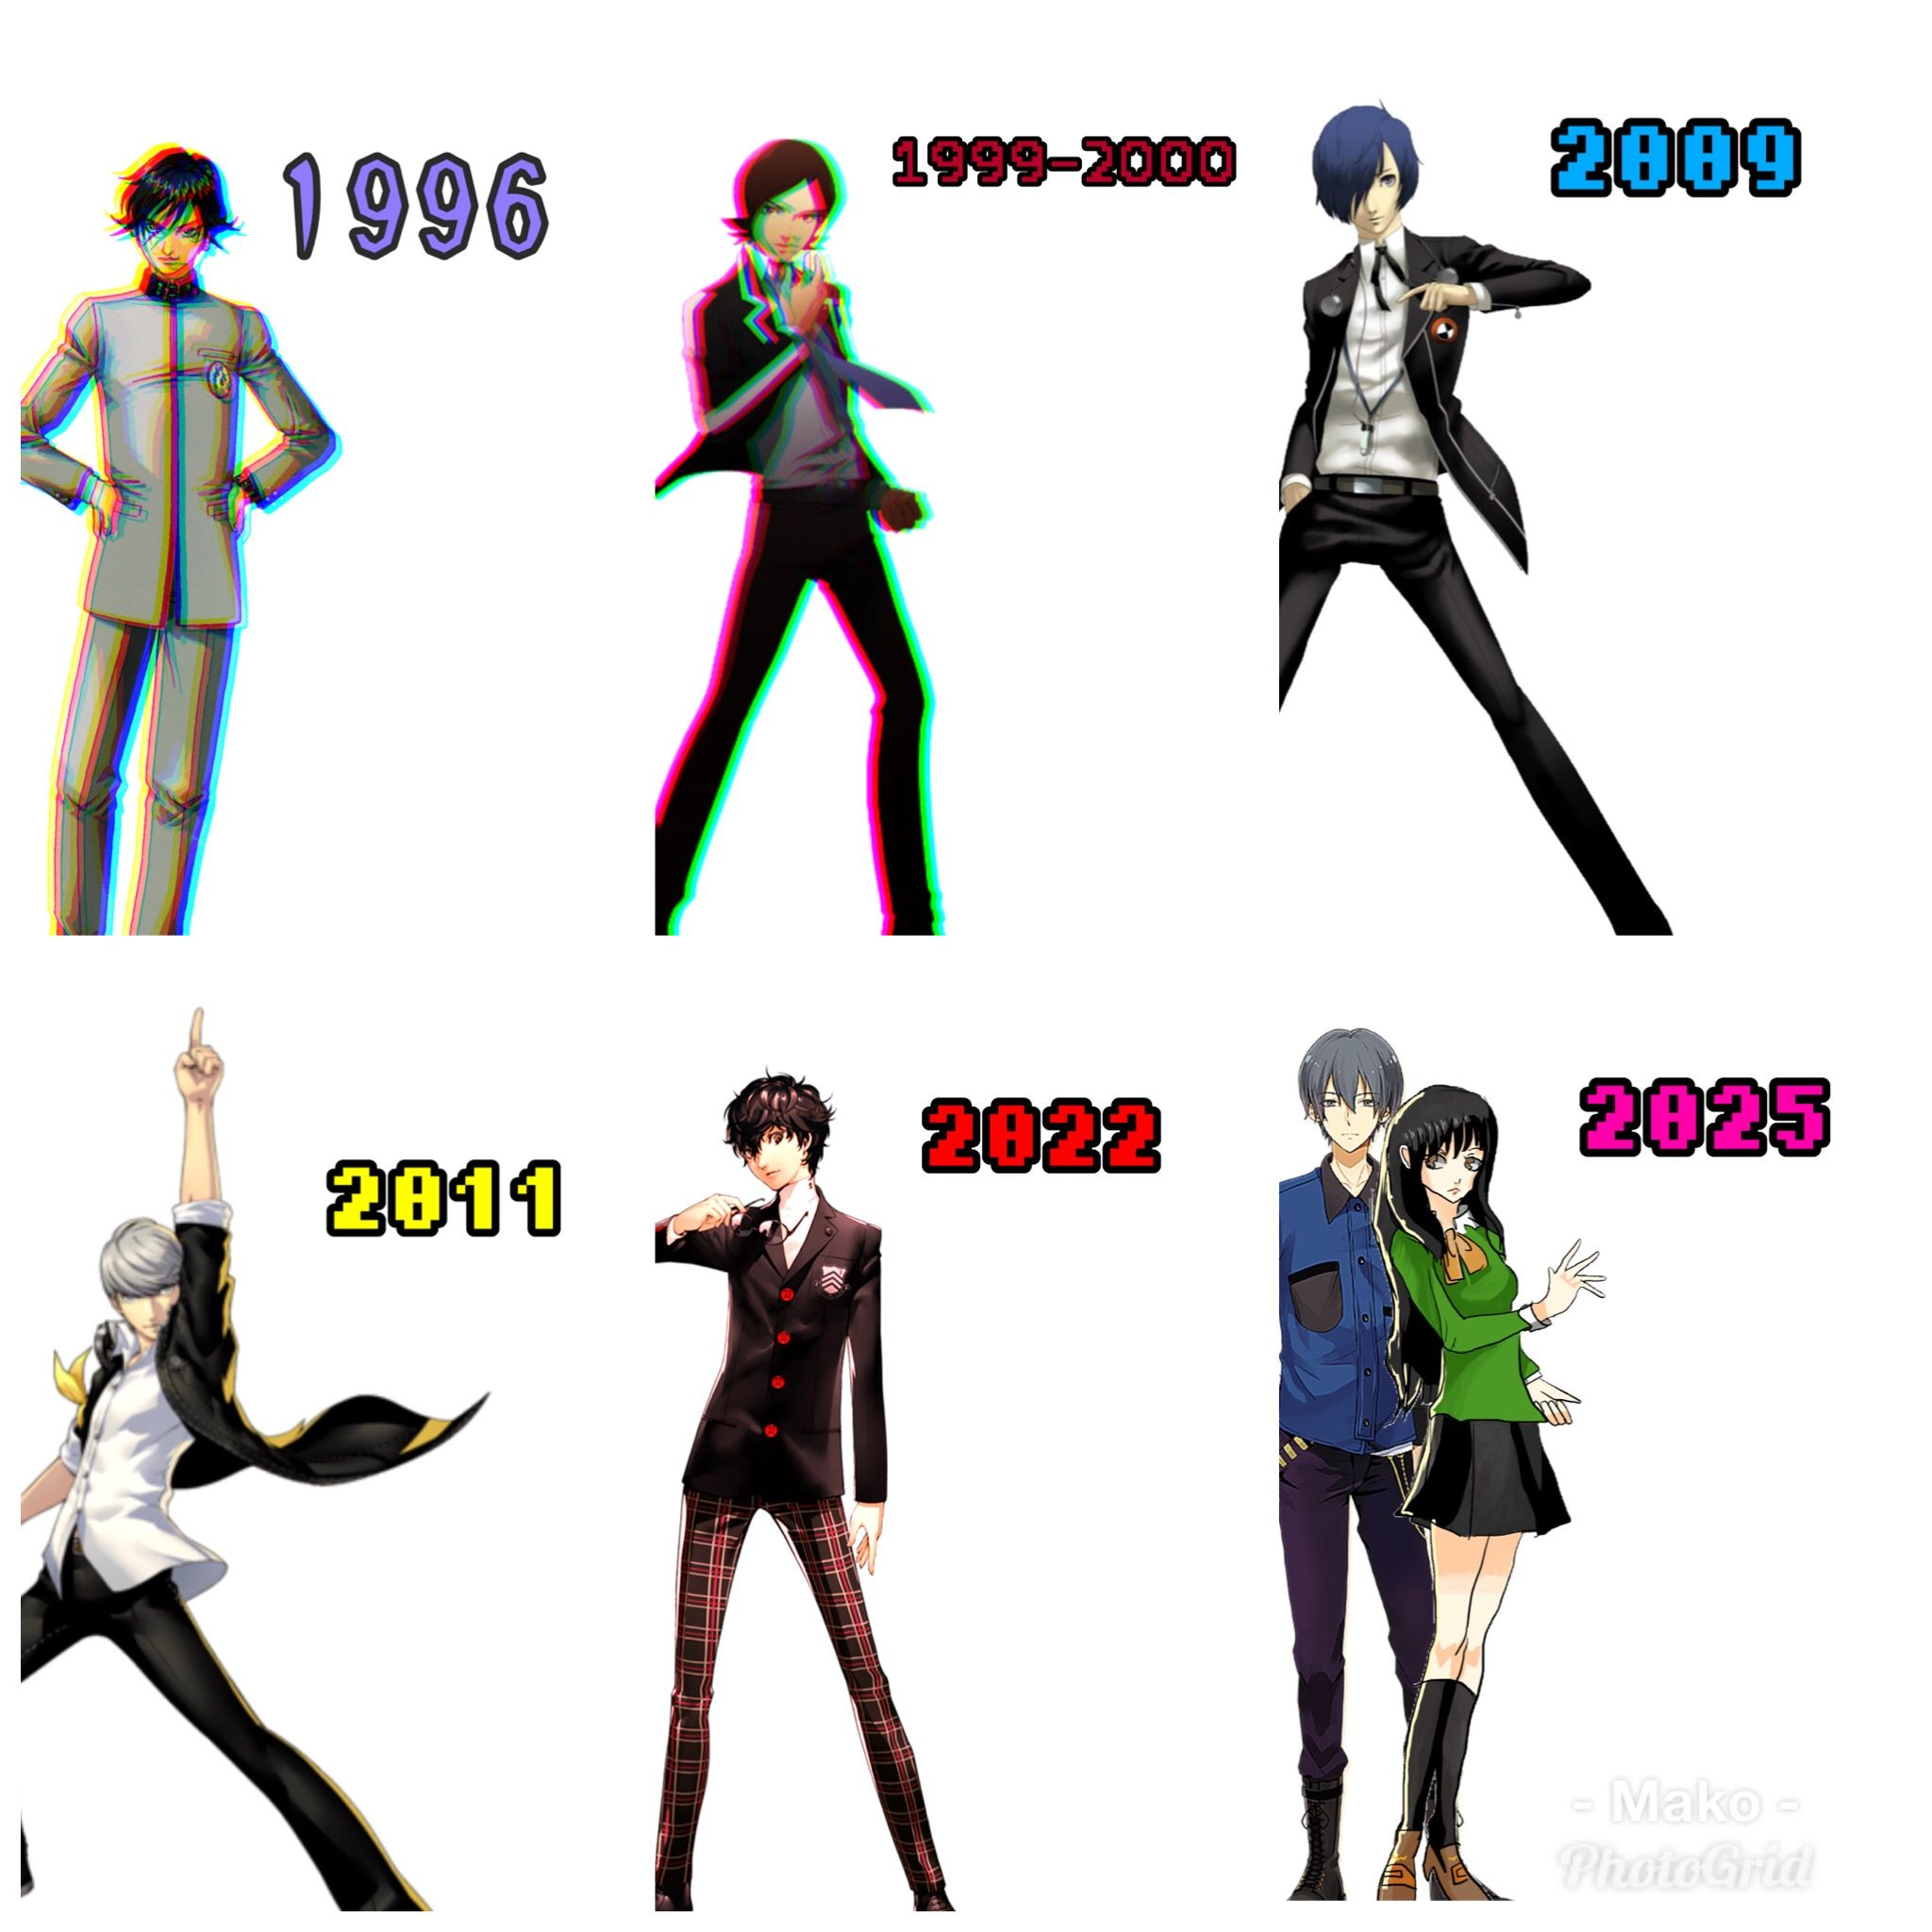 The list of years the persona games take place (yes, Im